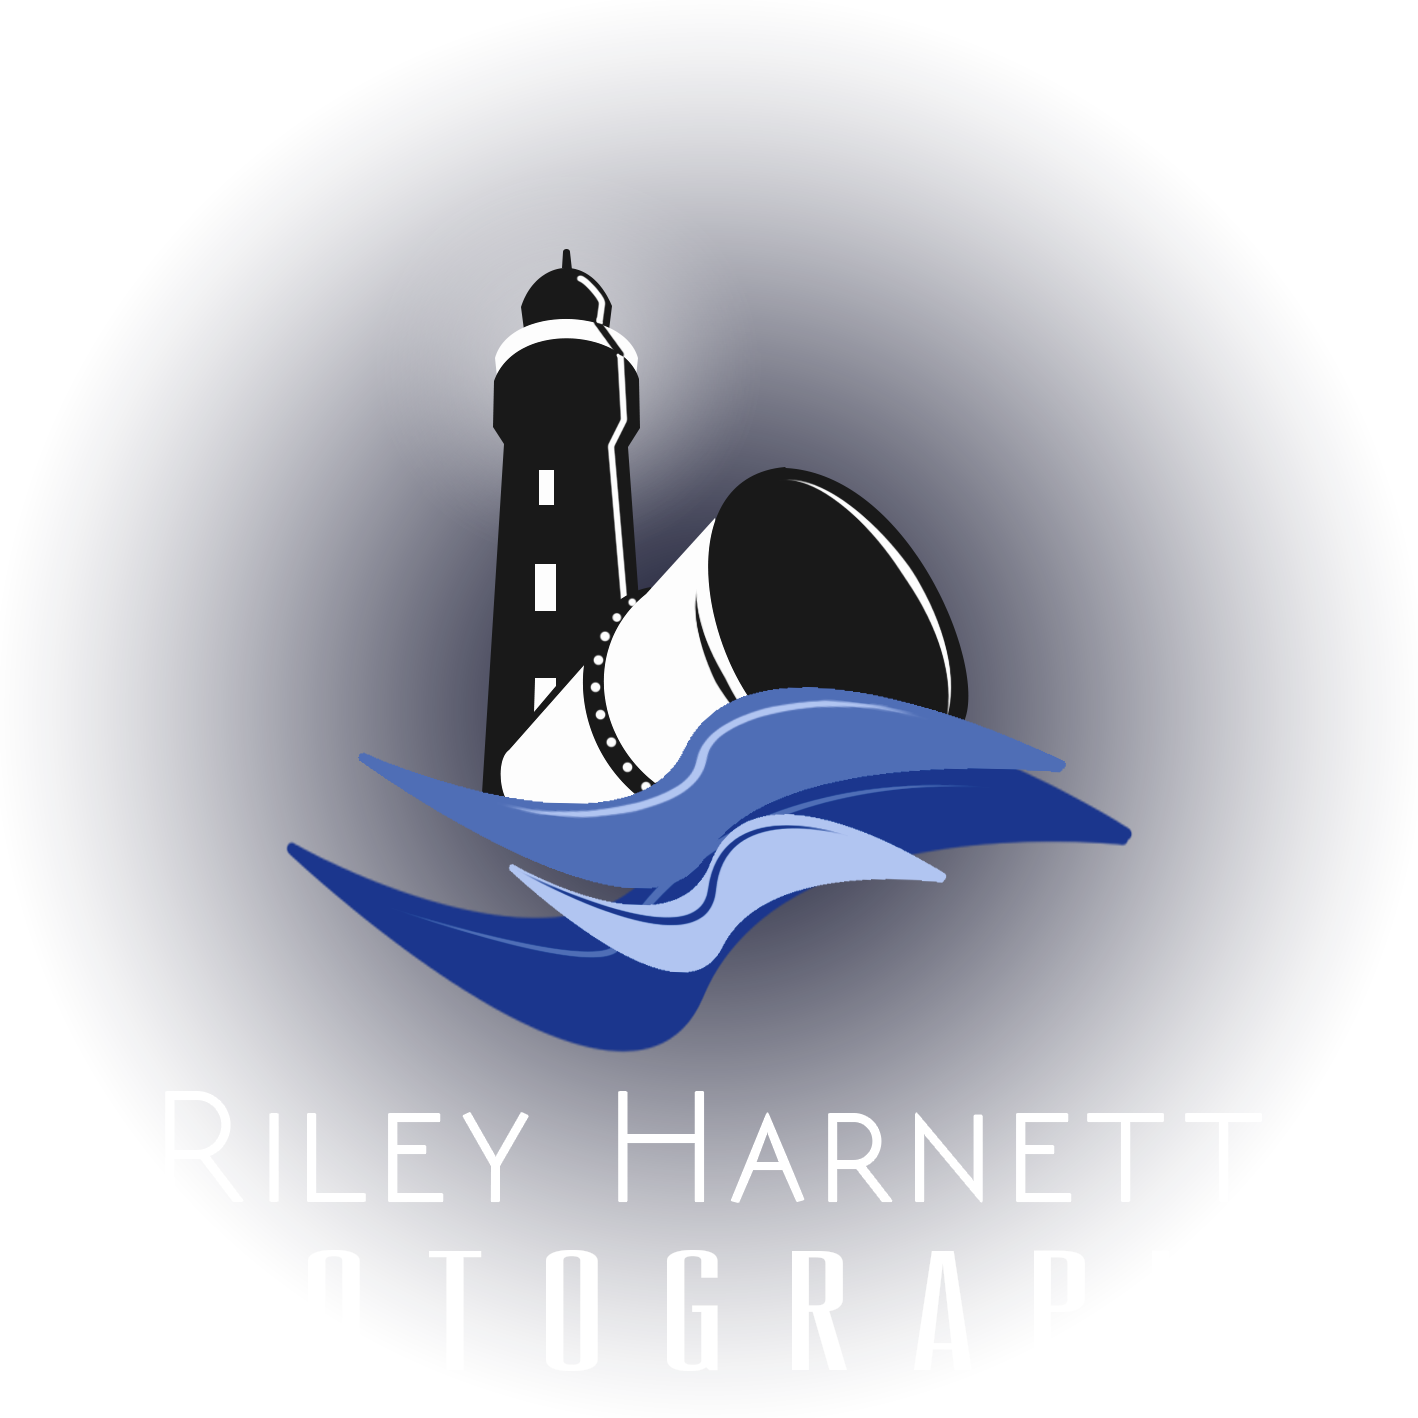 Contact Information - Curious what I can do for you?Feel free to reach out at riley_harnett@hotmail.comor find me on Instagram or FacebookVideo services available, too. If I can't make your project work, I can connect you with those who can.